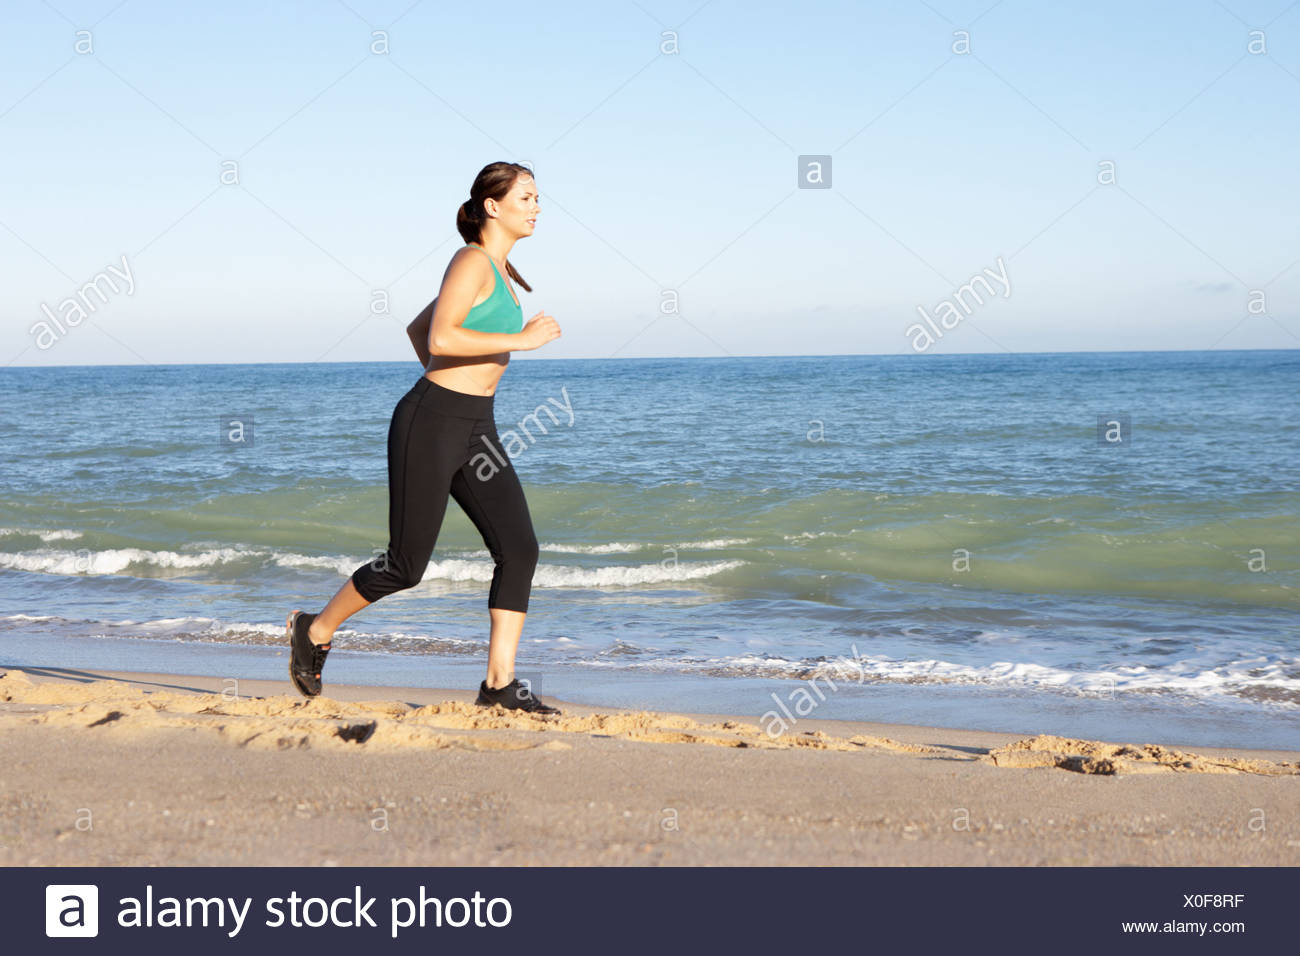 Young Woman Fitness Clothing Running Along Beach - Stock Image